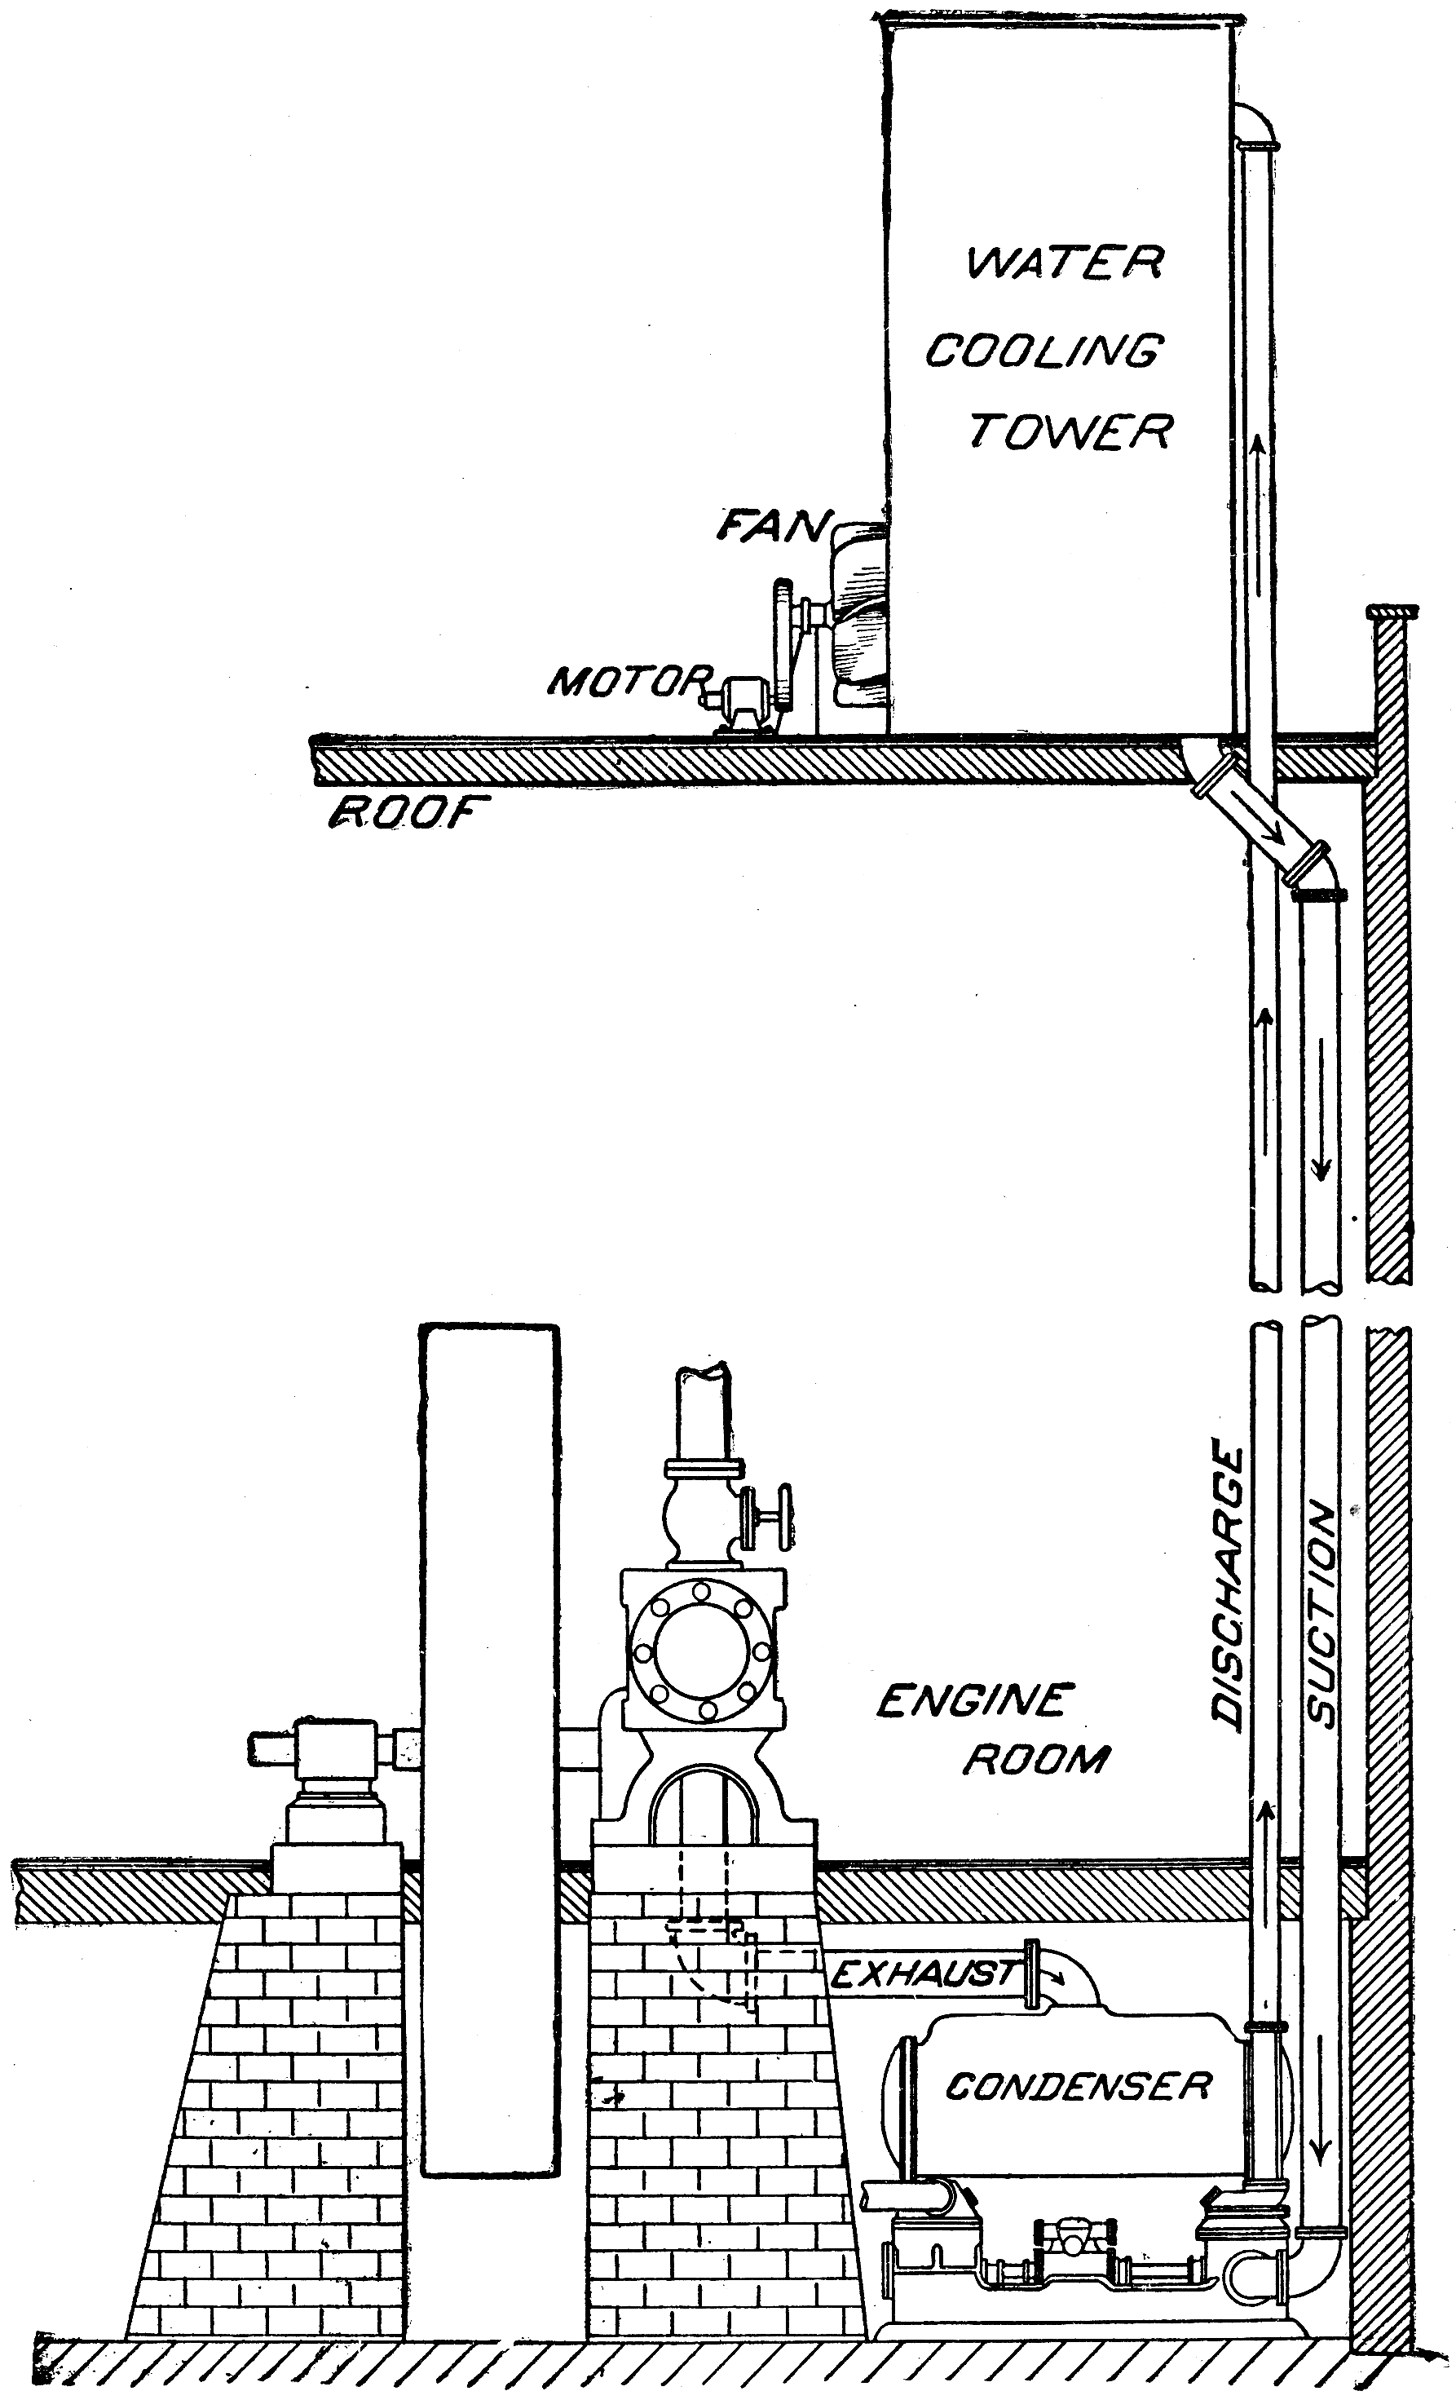 Water Tower Condenser Steam Cooling System in Engine Room